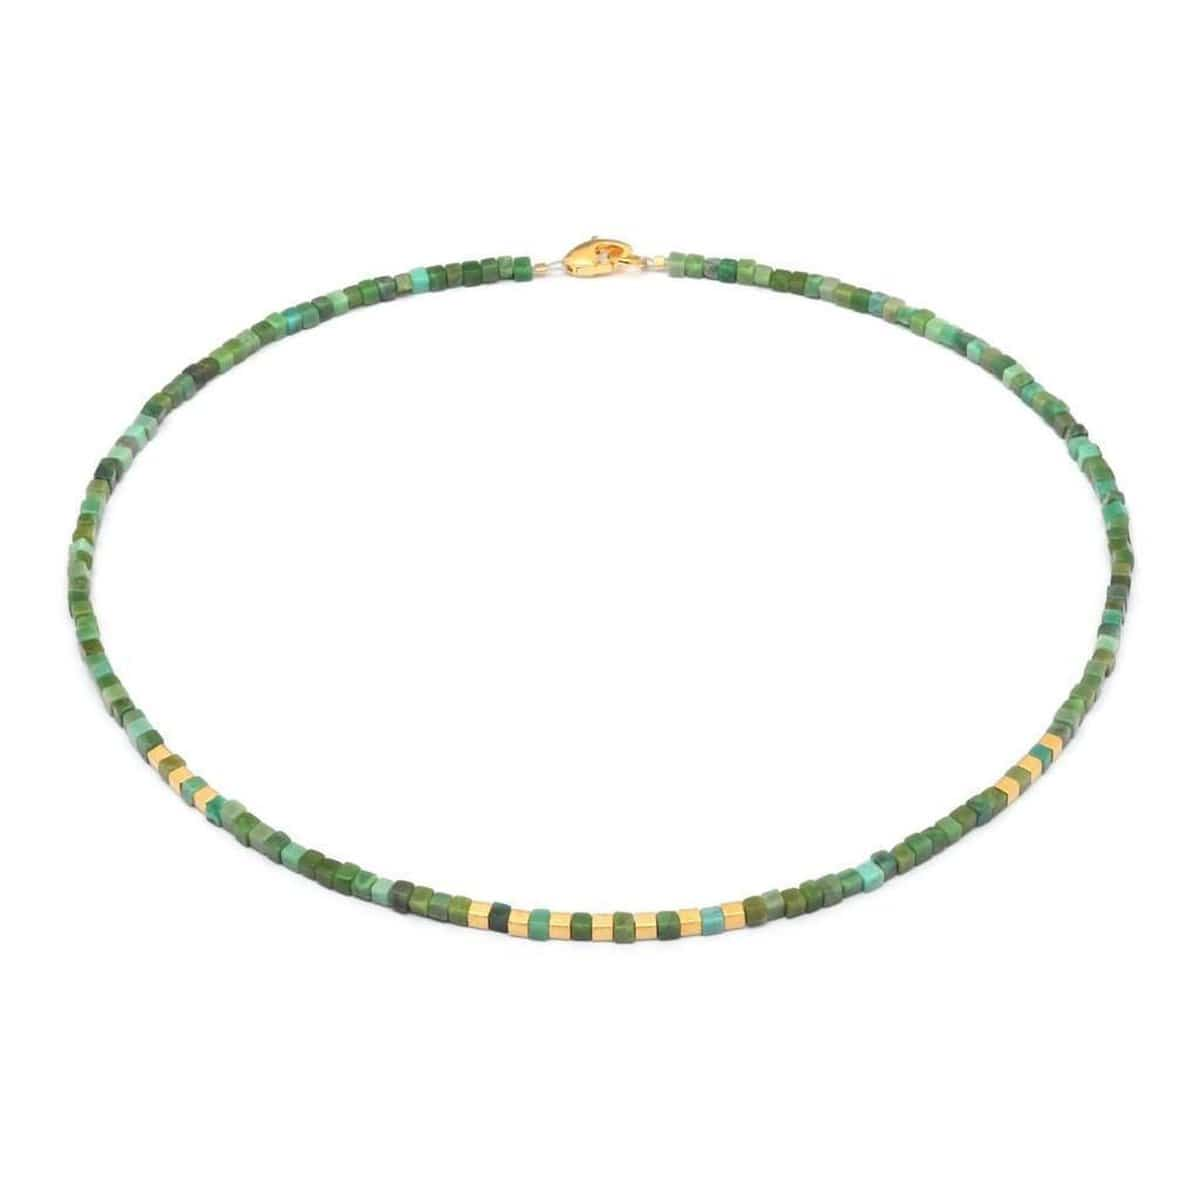 Cubesa Green Turquoise Necklace - 84436356-Bernd Wolf-Renee Taylor Gallery